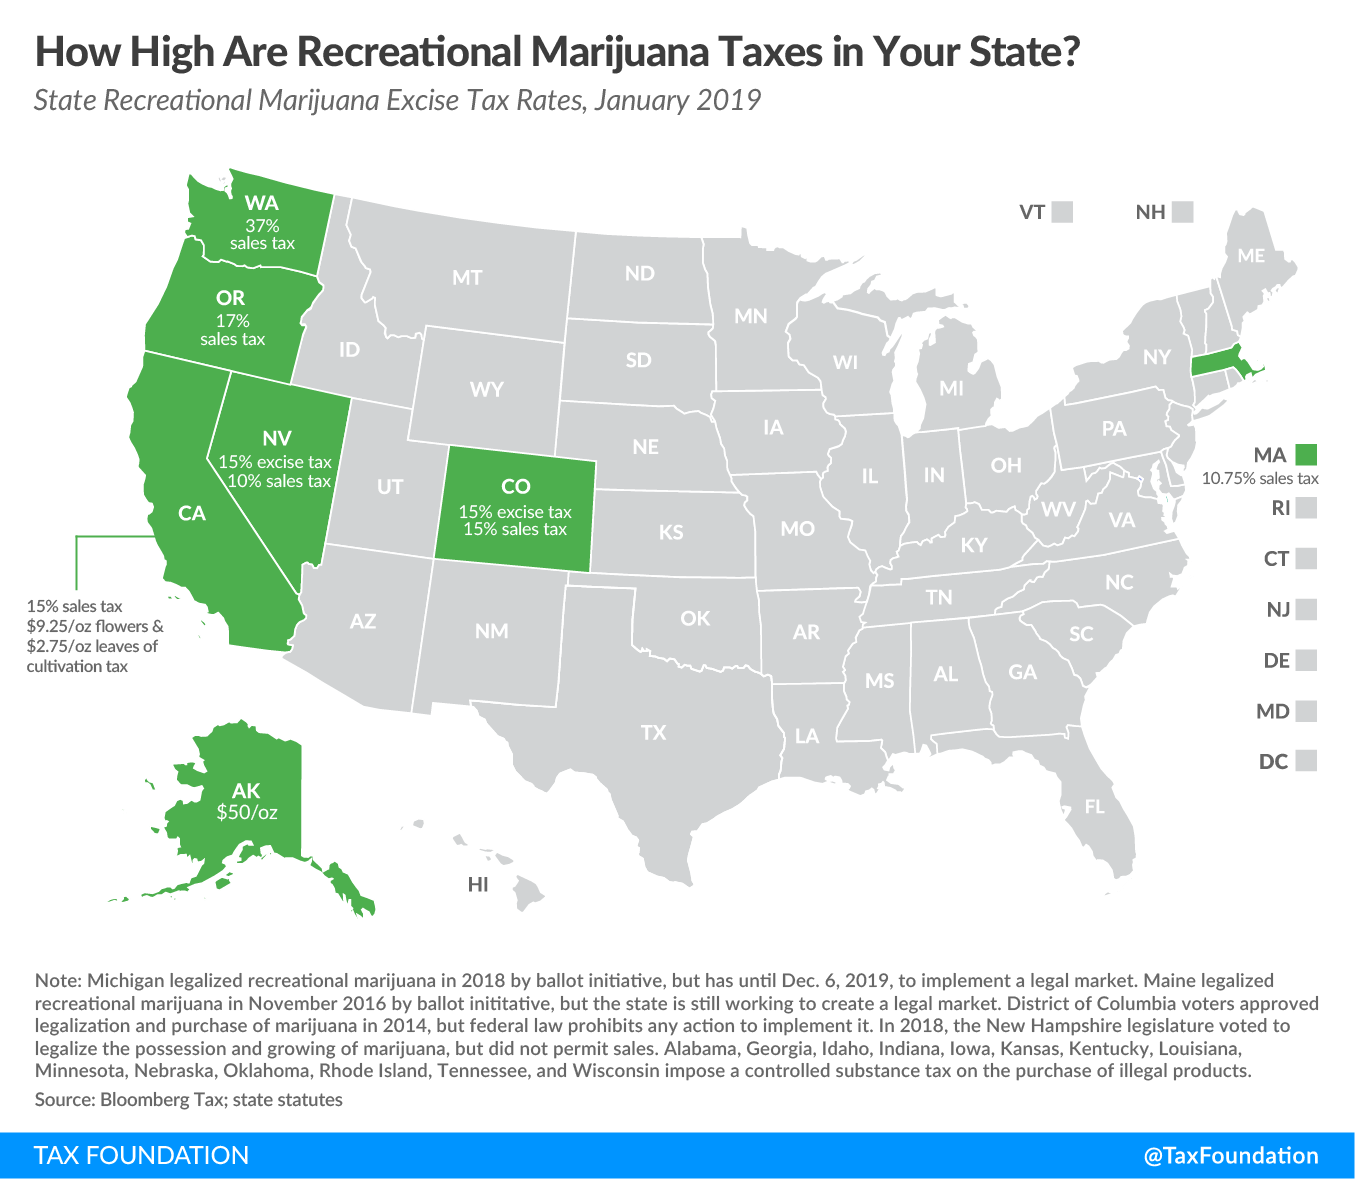 How High Are Recreational Marijuana Taxes In Your State 2019